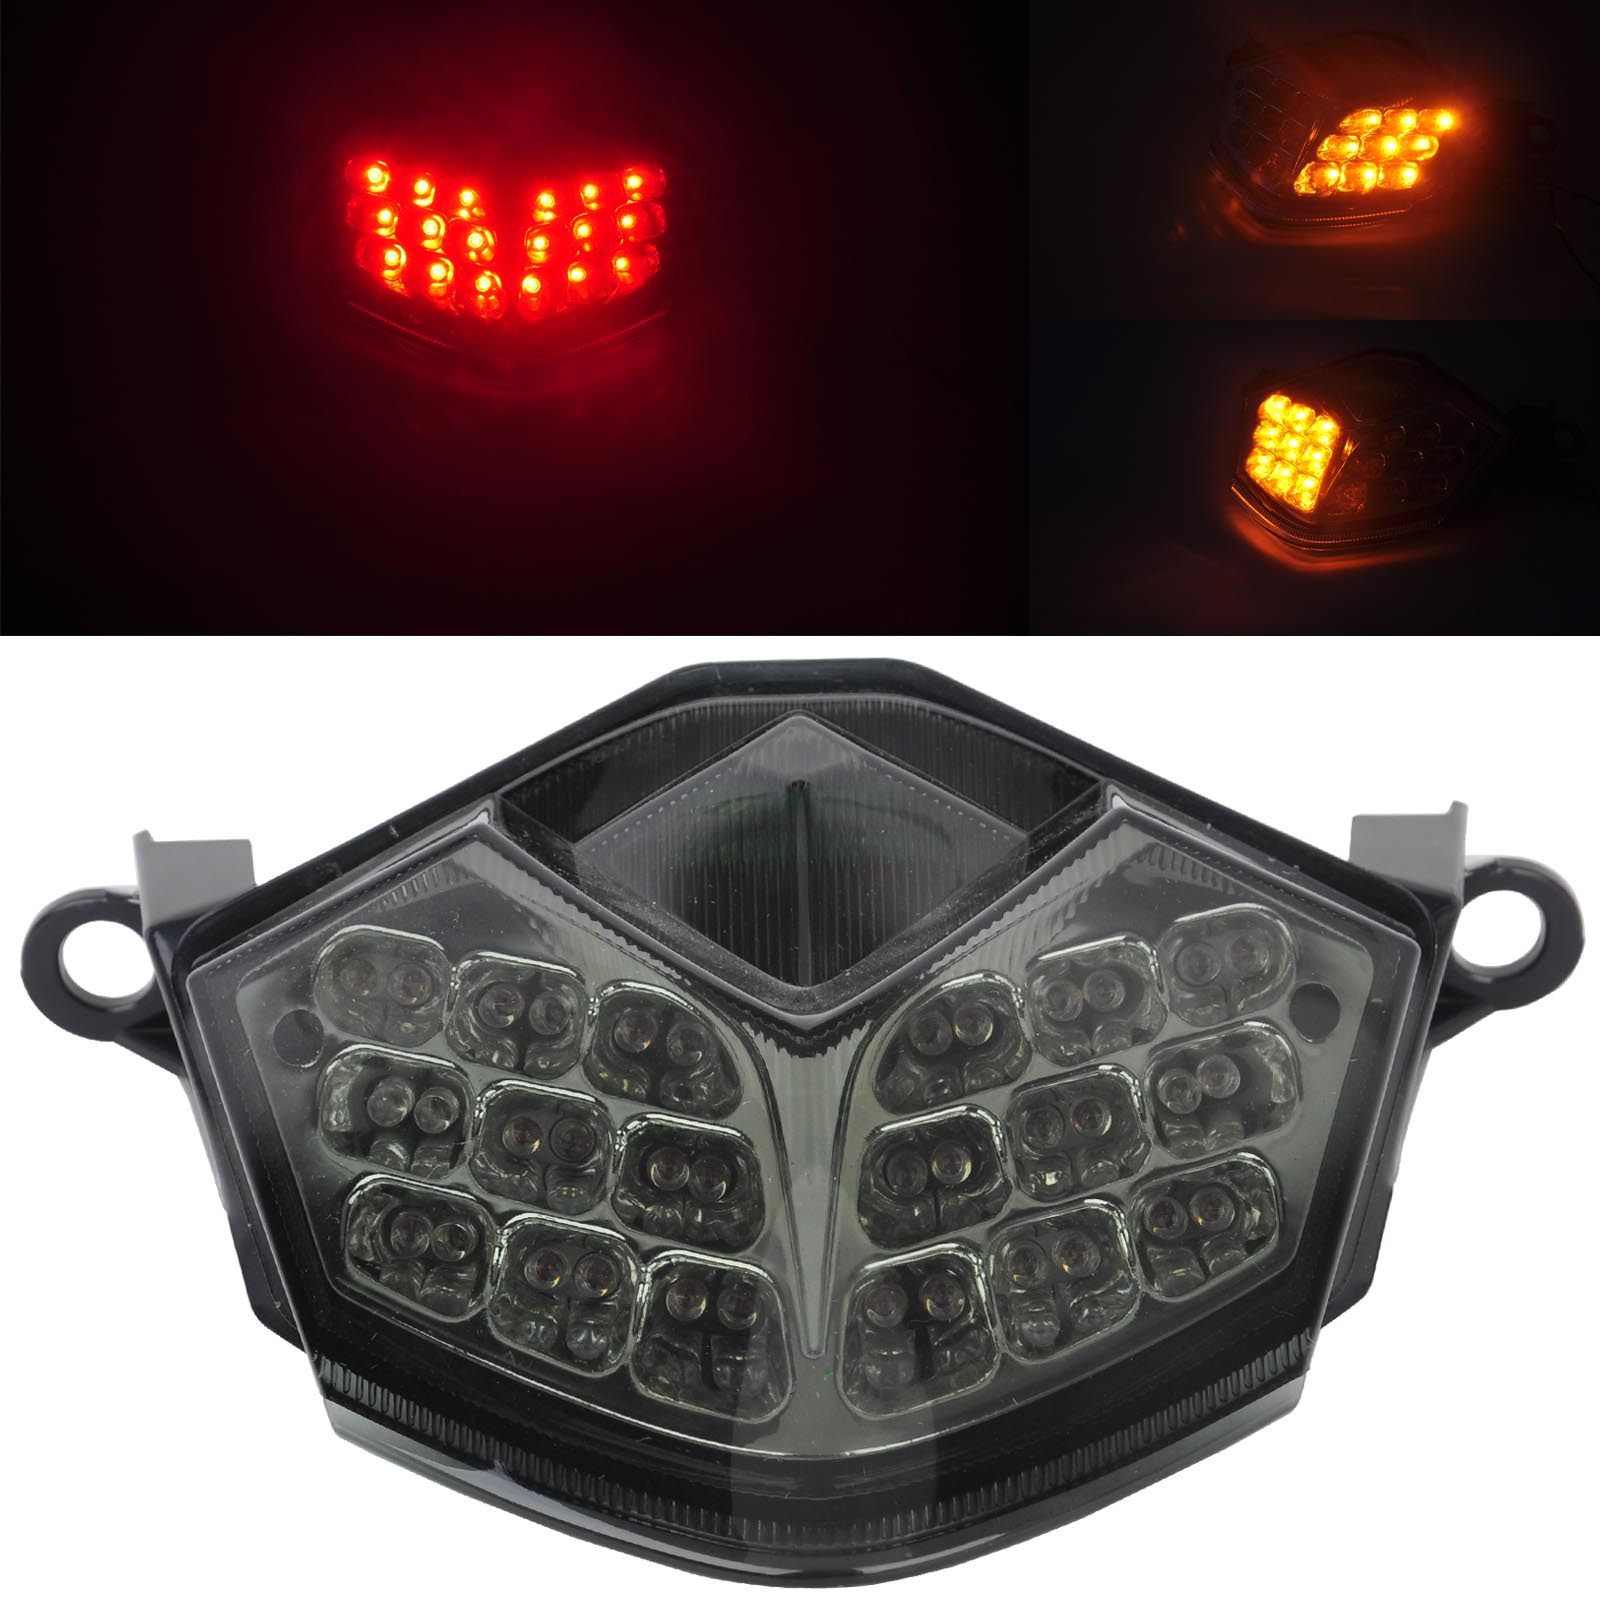 For Kawasaki 1pc 12V Motorcycle Stop Break Tail Light LED Turn Signal Lamp Support ZX-10R ZX-6R/636 Z750 Z1000 Mayitr origianl clevo 6 87 n350s 4d7 6 87 n350s 4d8 n350bat 6 n350bat 9 laptop battery